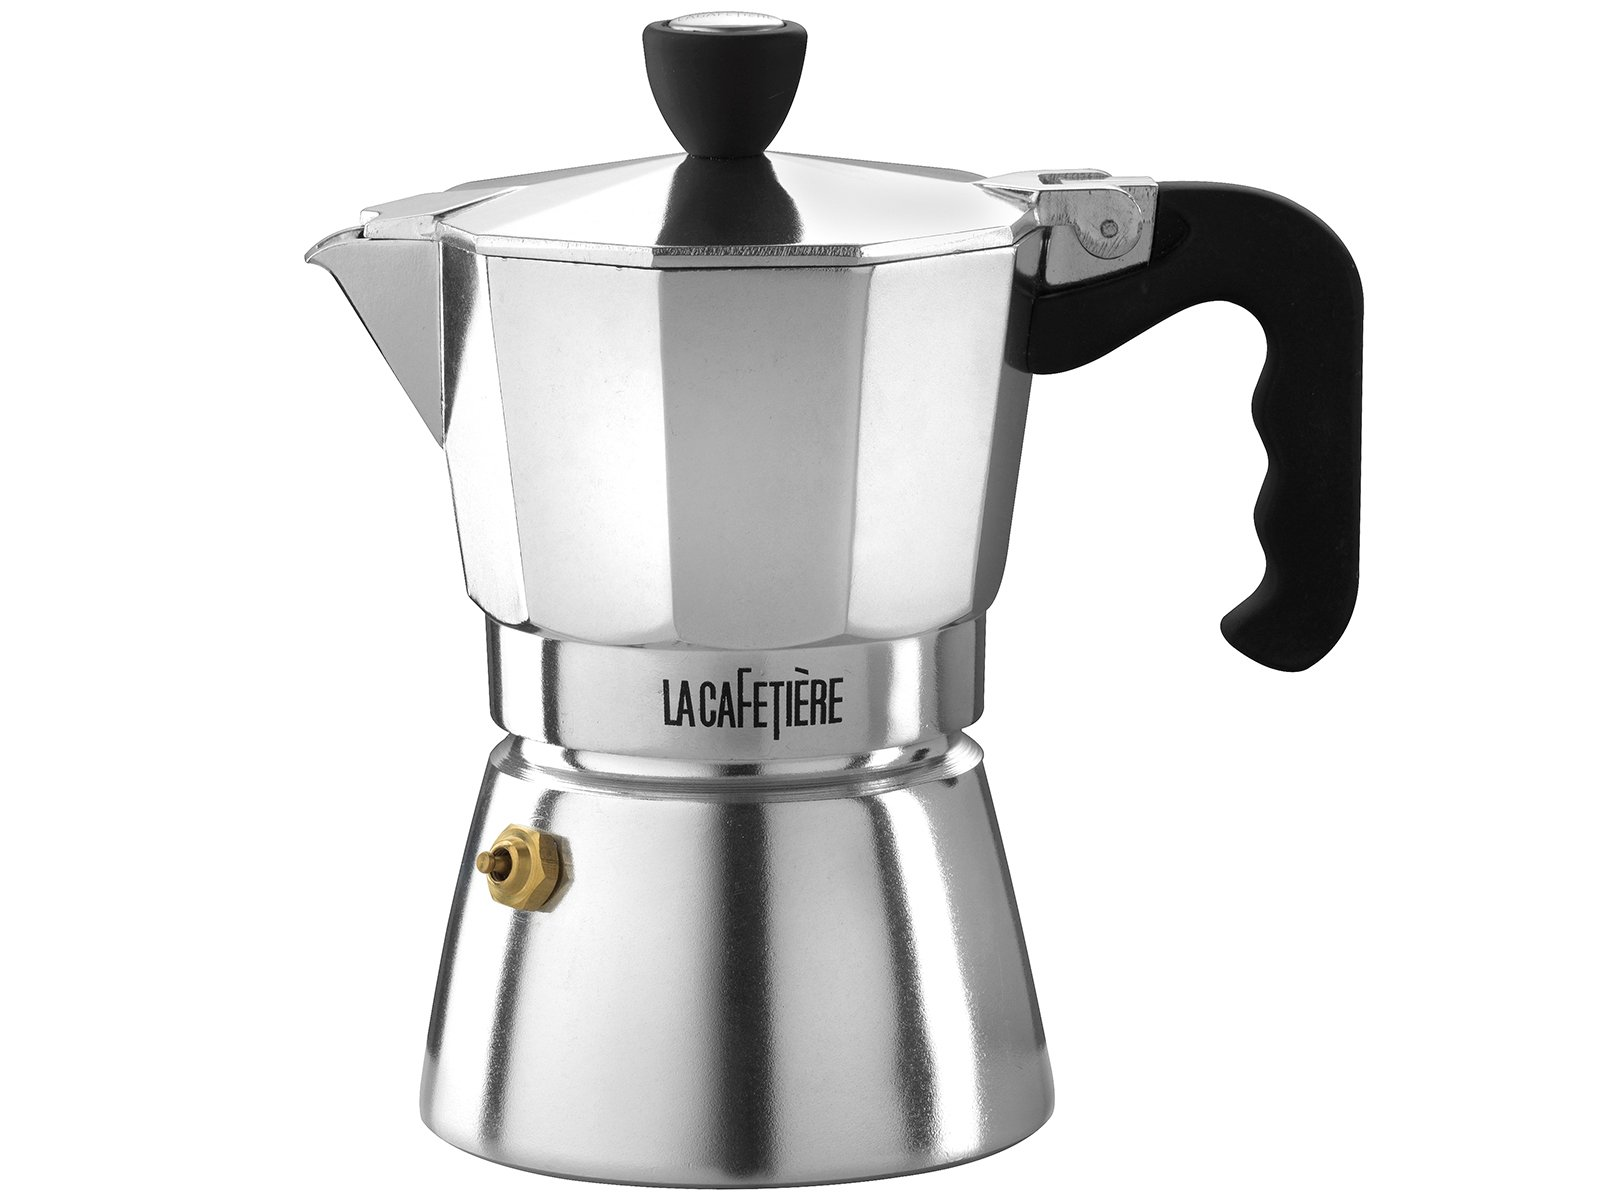 LaCafetiere Stovetop Espresso, Classic Polished, 3 Cup